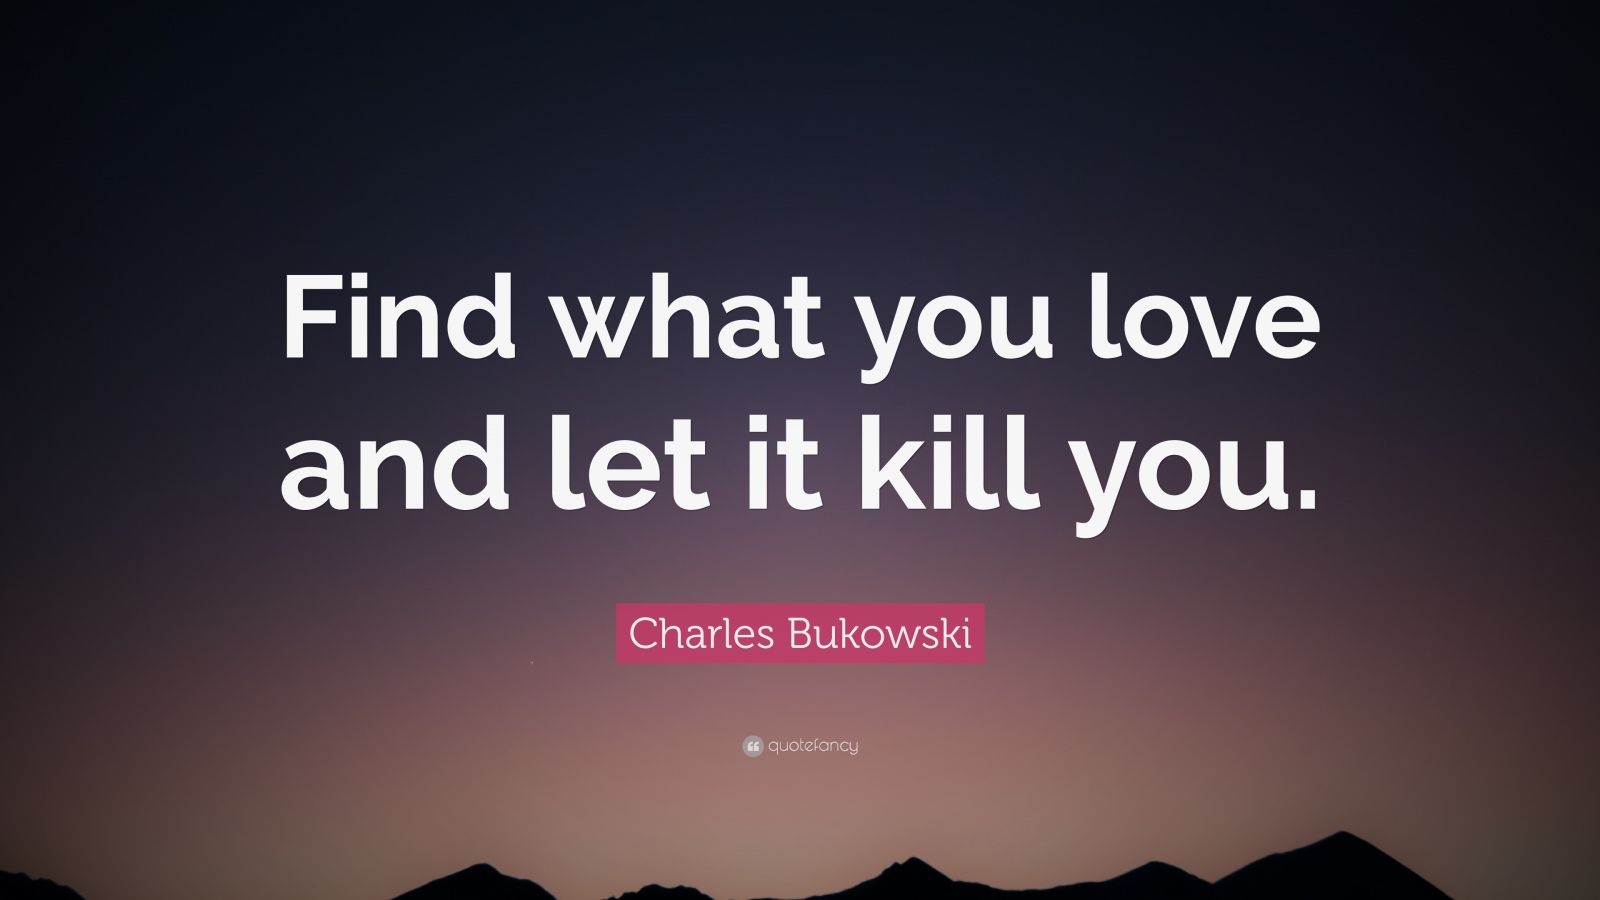 Charles Bukowski Quotes Charles Bukowski Quotes (100 wallpapers)   Quotefancy Charles Bukowski Quotes